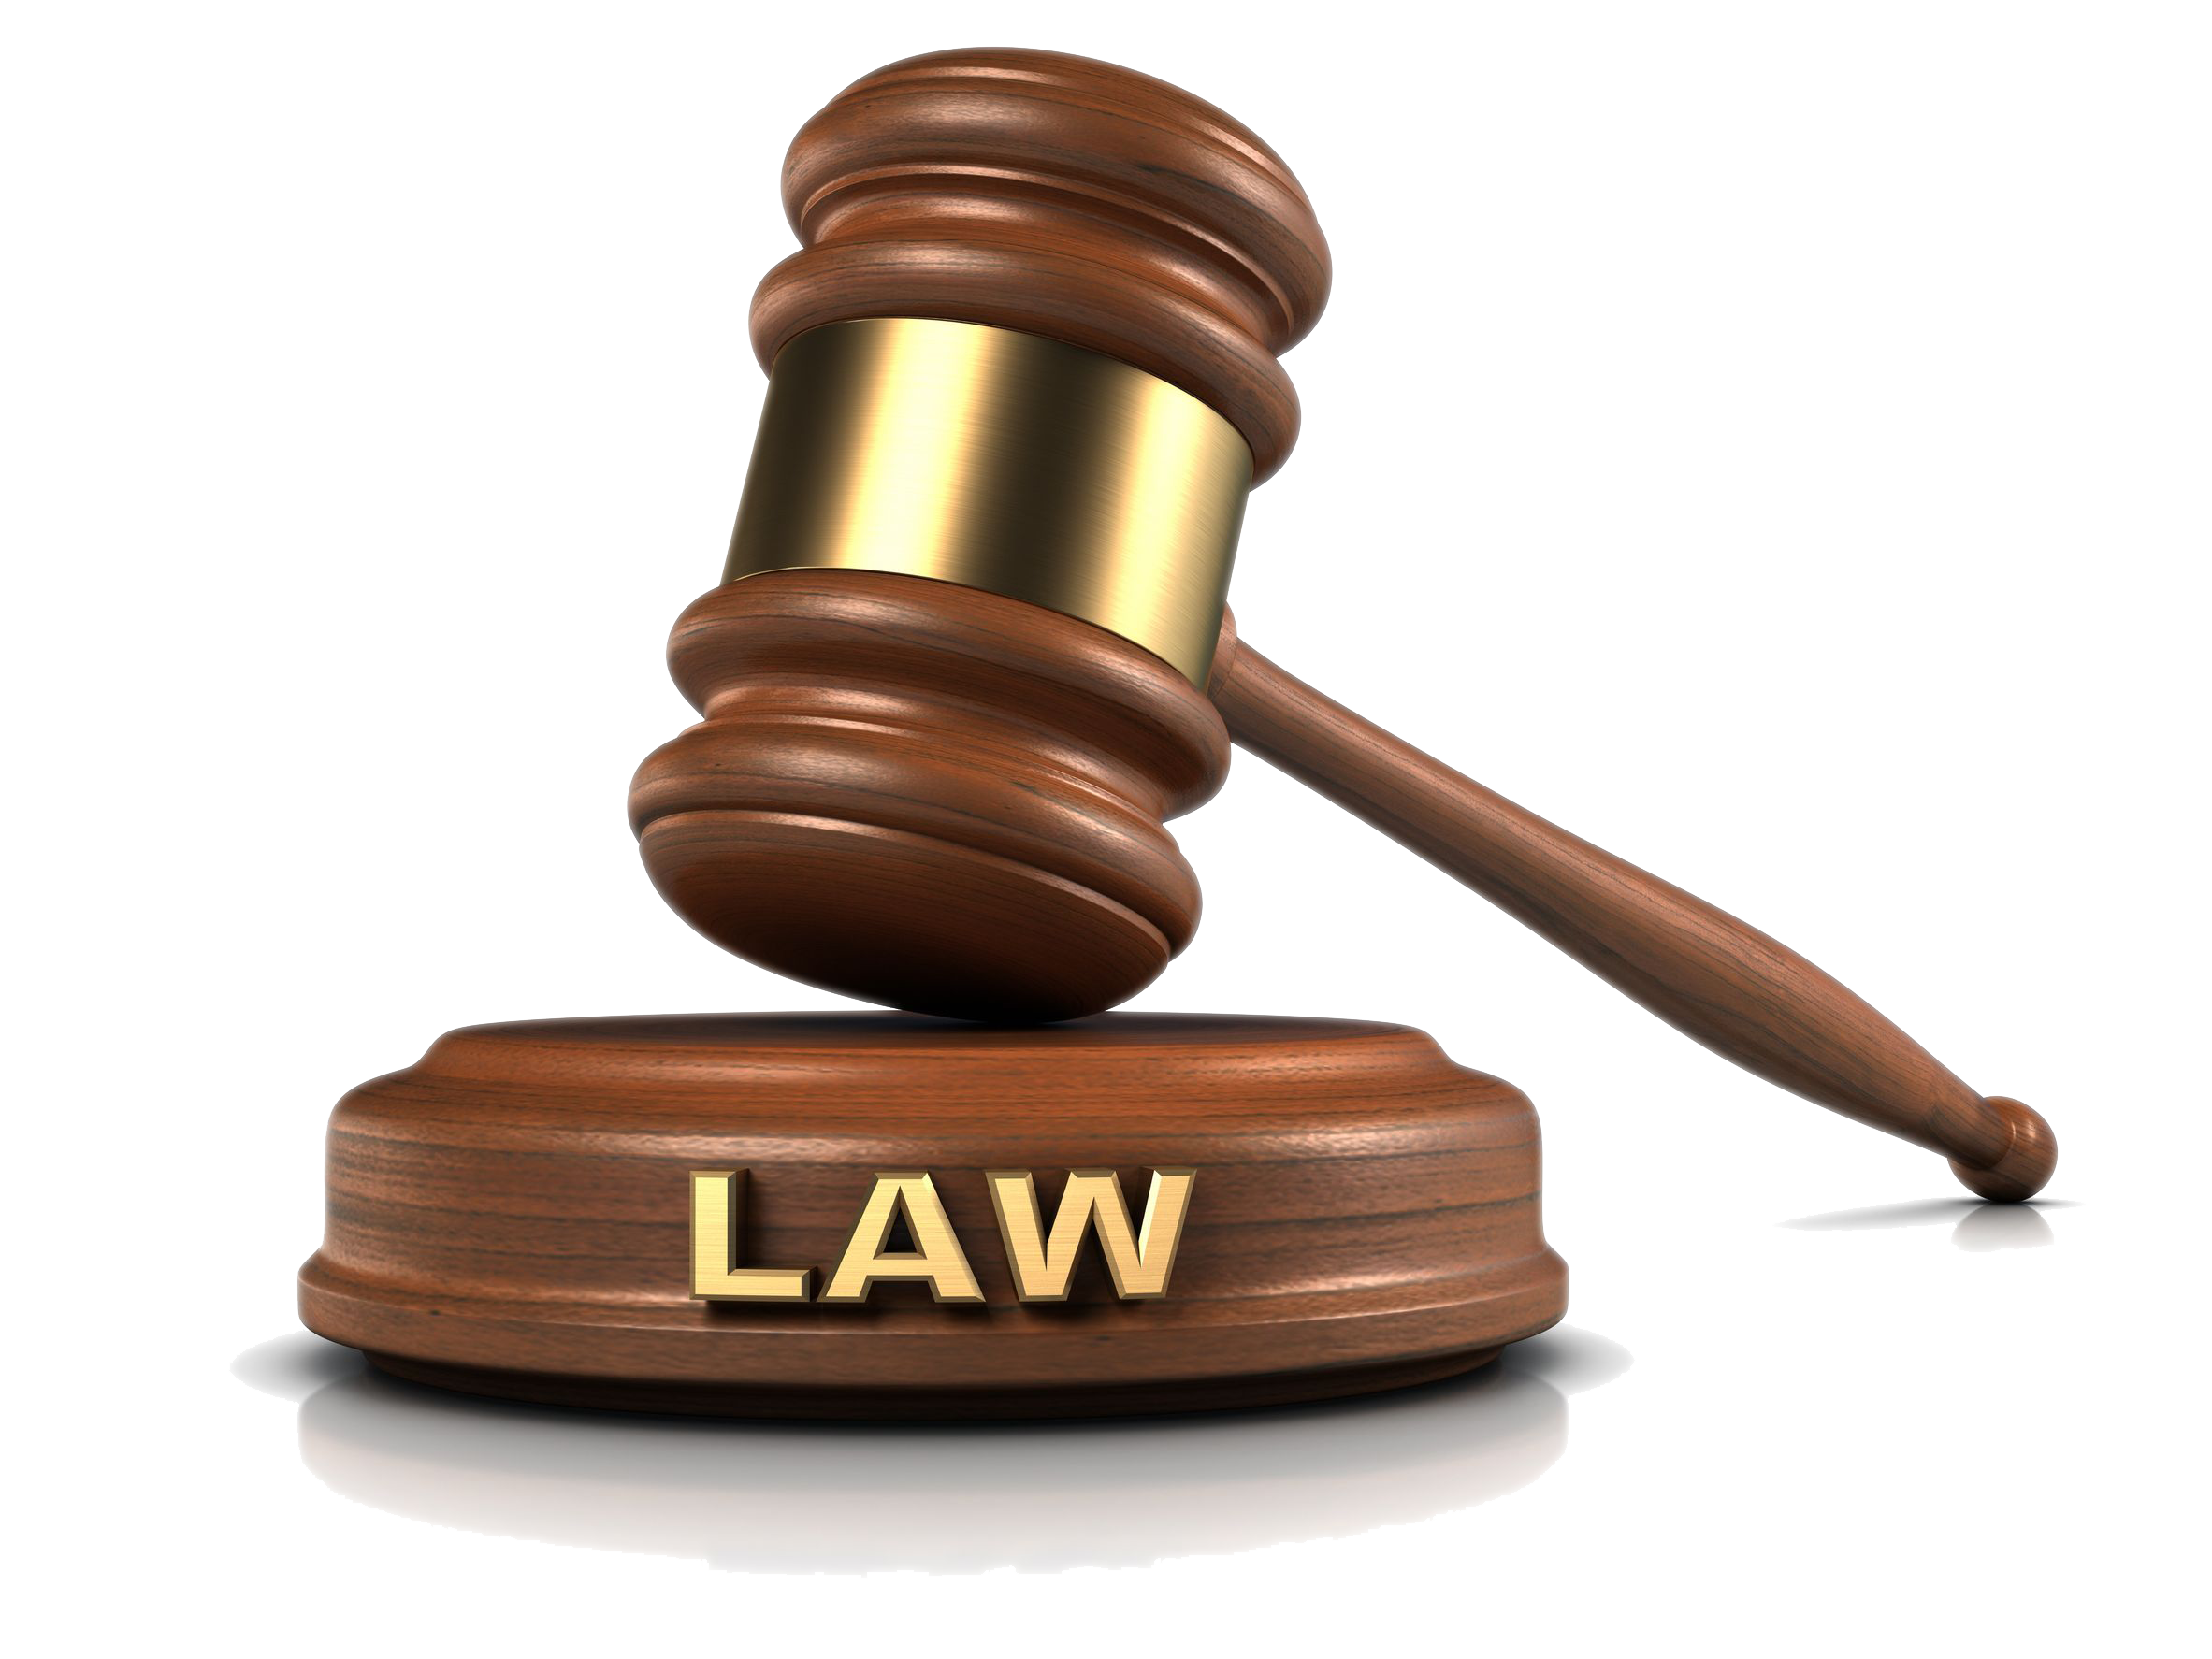 Court Hammer Free Png Image - Gavel, Transparent background PNG HD thumbnail